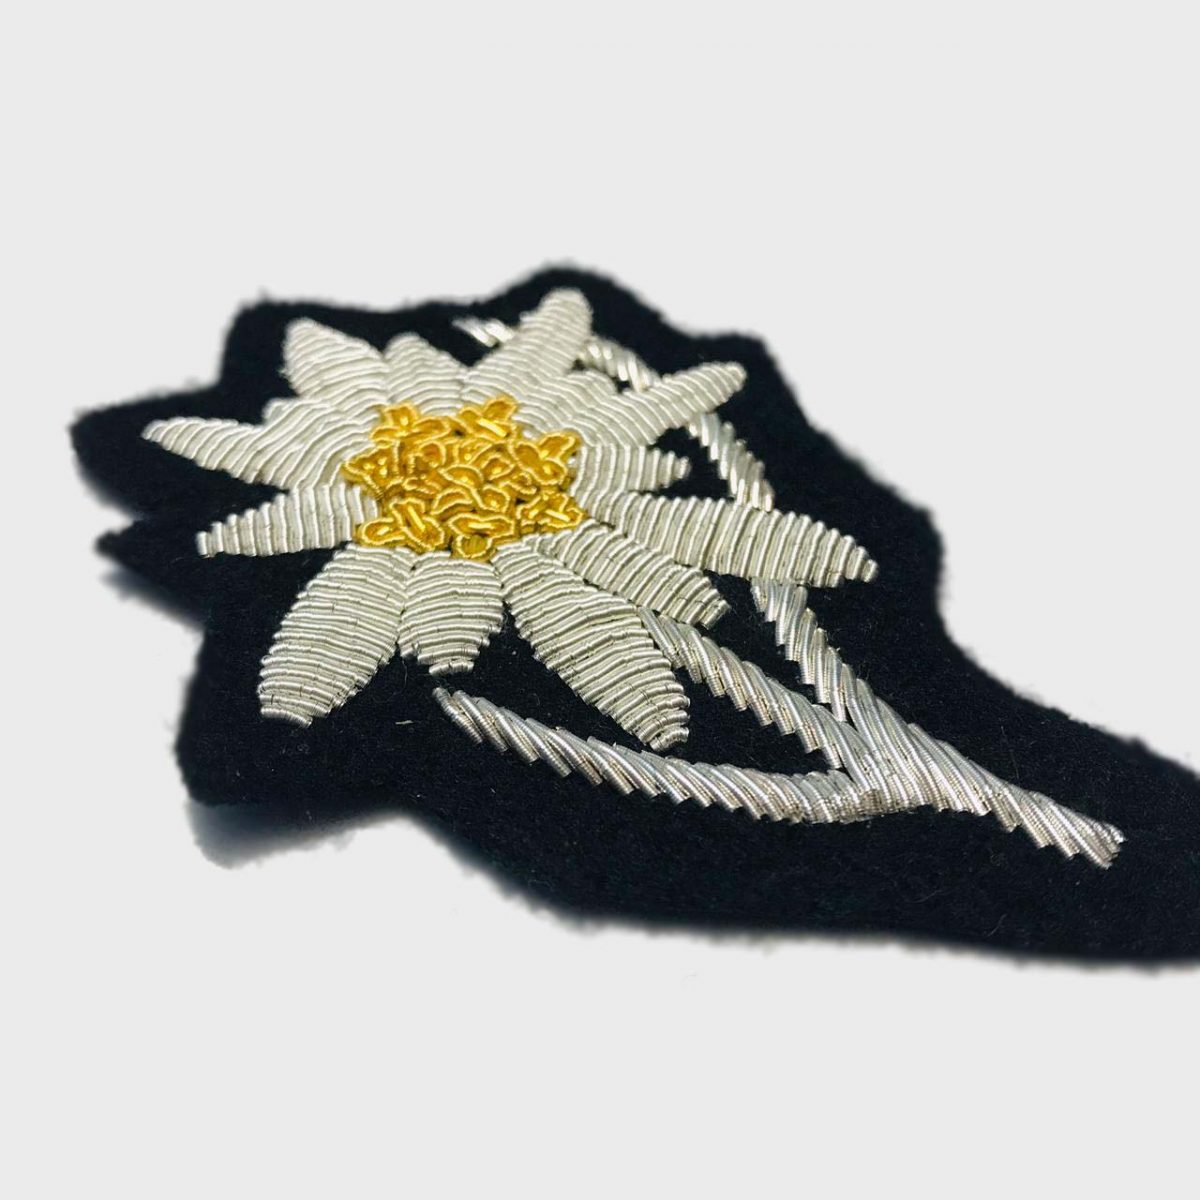 Edelweiss Flower Bullion Embroidered Badge , Sew-on Applique Patch - Edelweiss Embroidered PatchSize # 3 inchesSew-on backingSilver bullion wires embroidered on felt  3